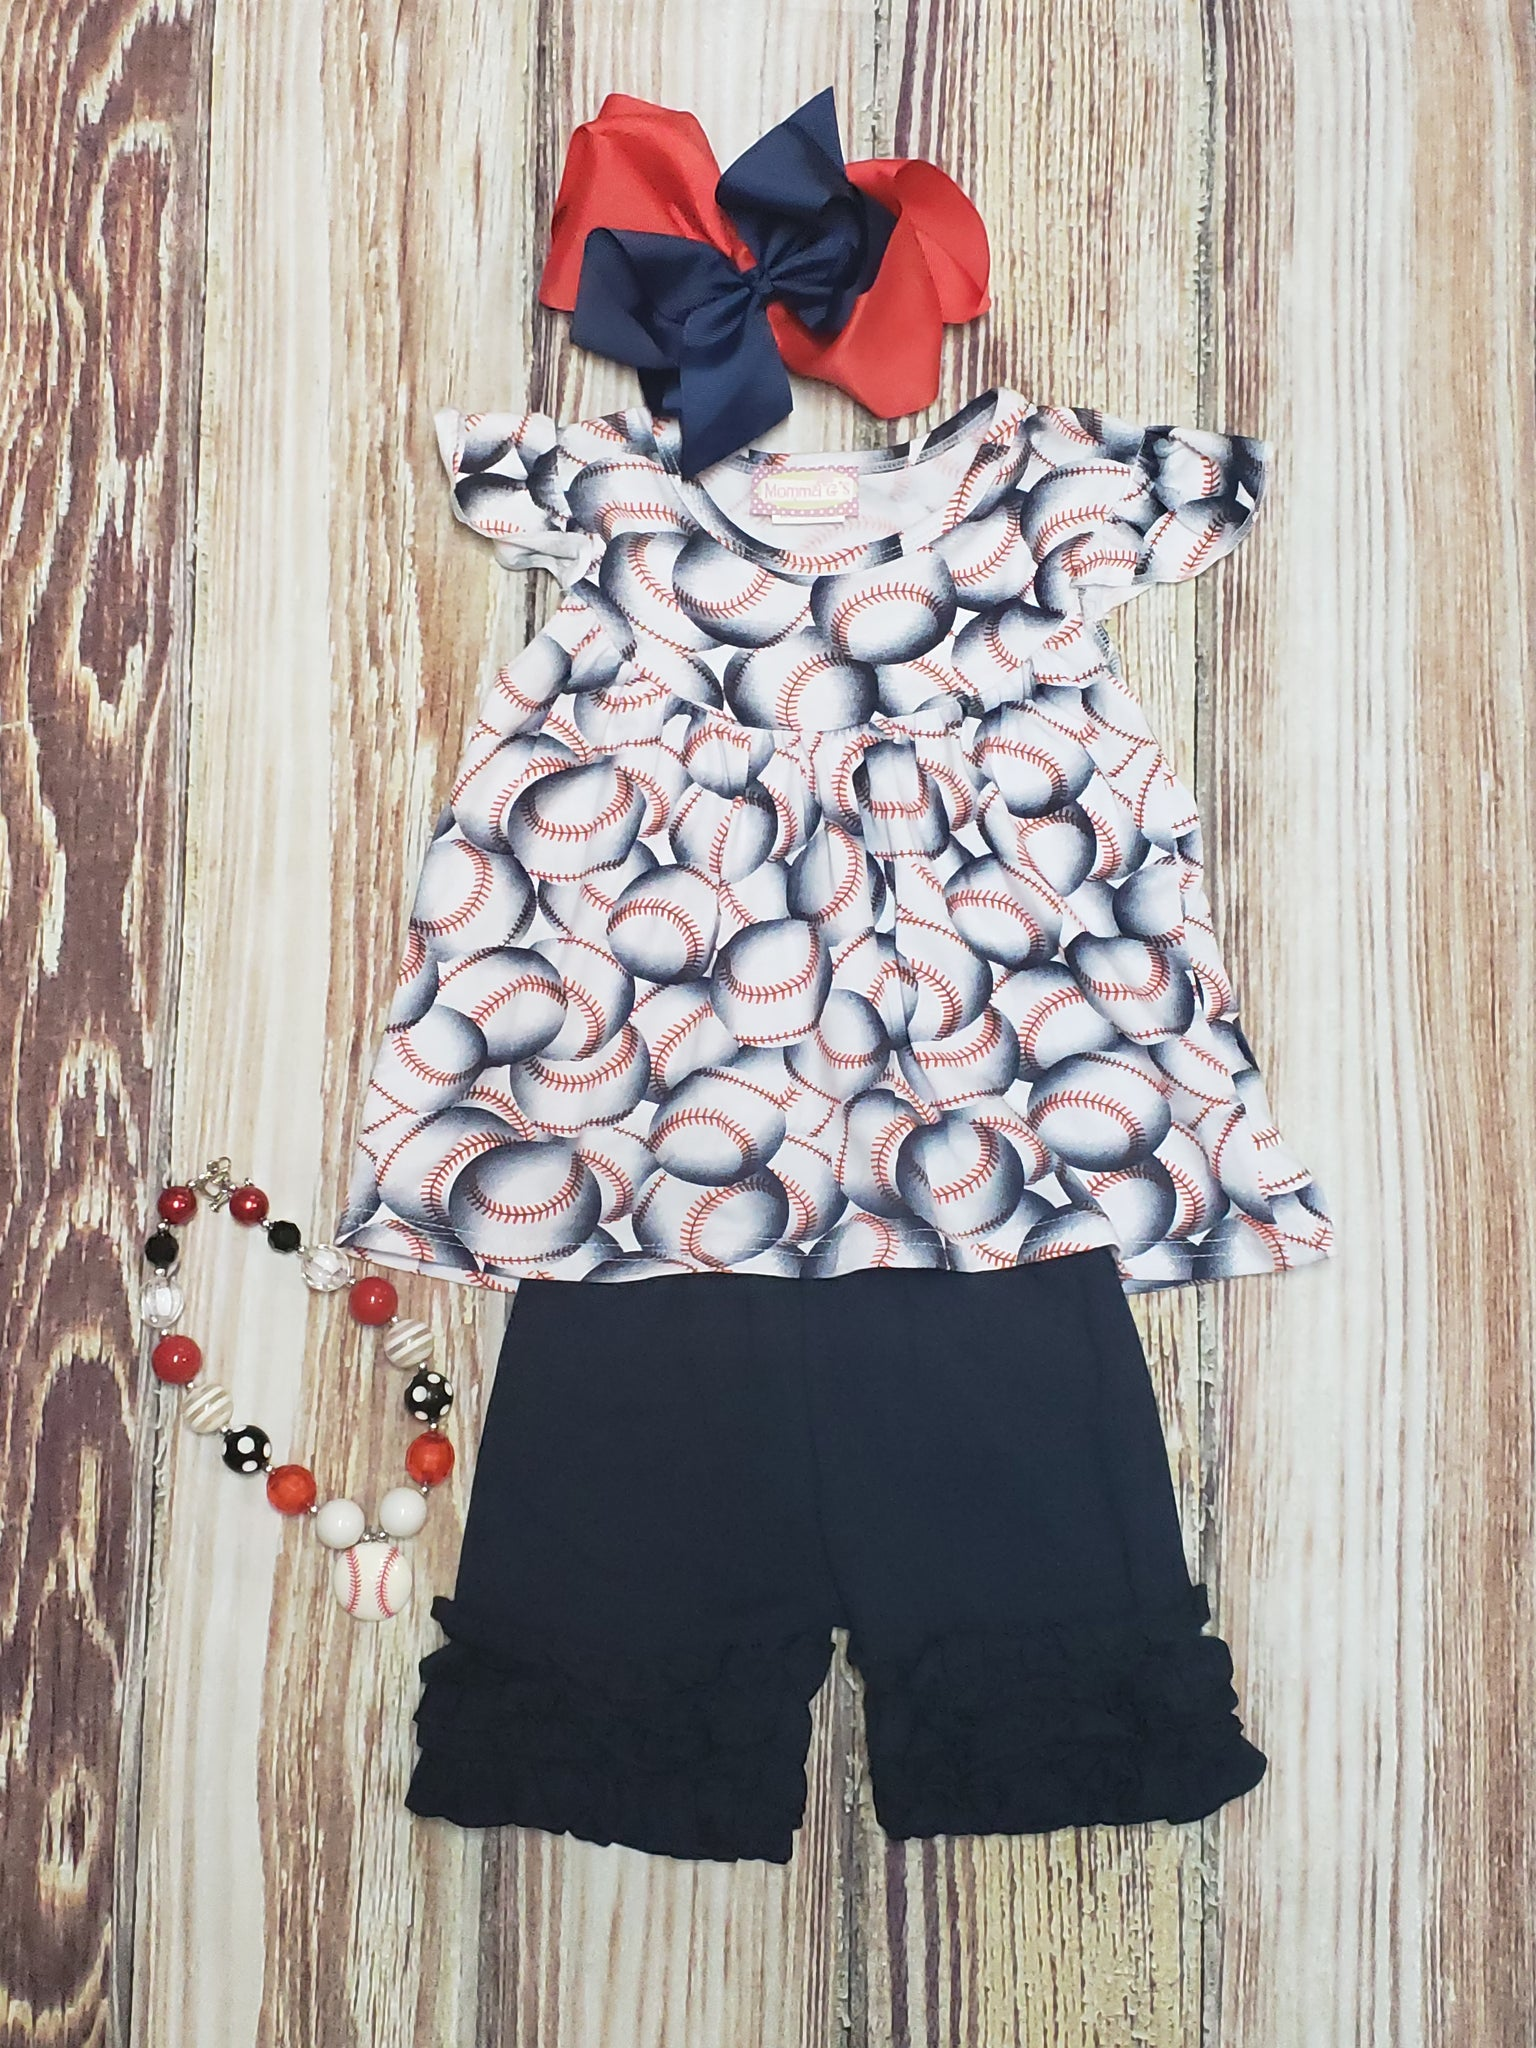 Girls Navy Baseball Set - Momma G's Children's Boutique, Screen Printing, Embroidery & More